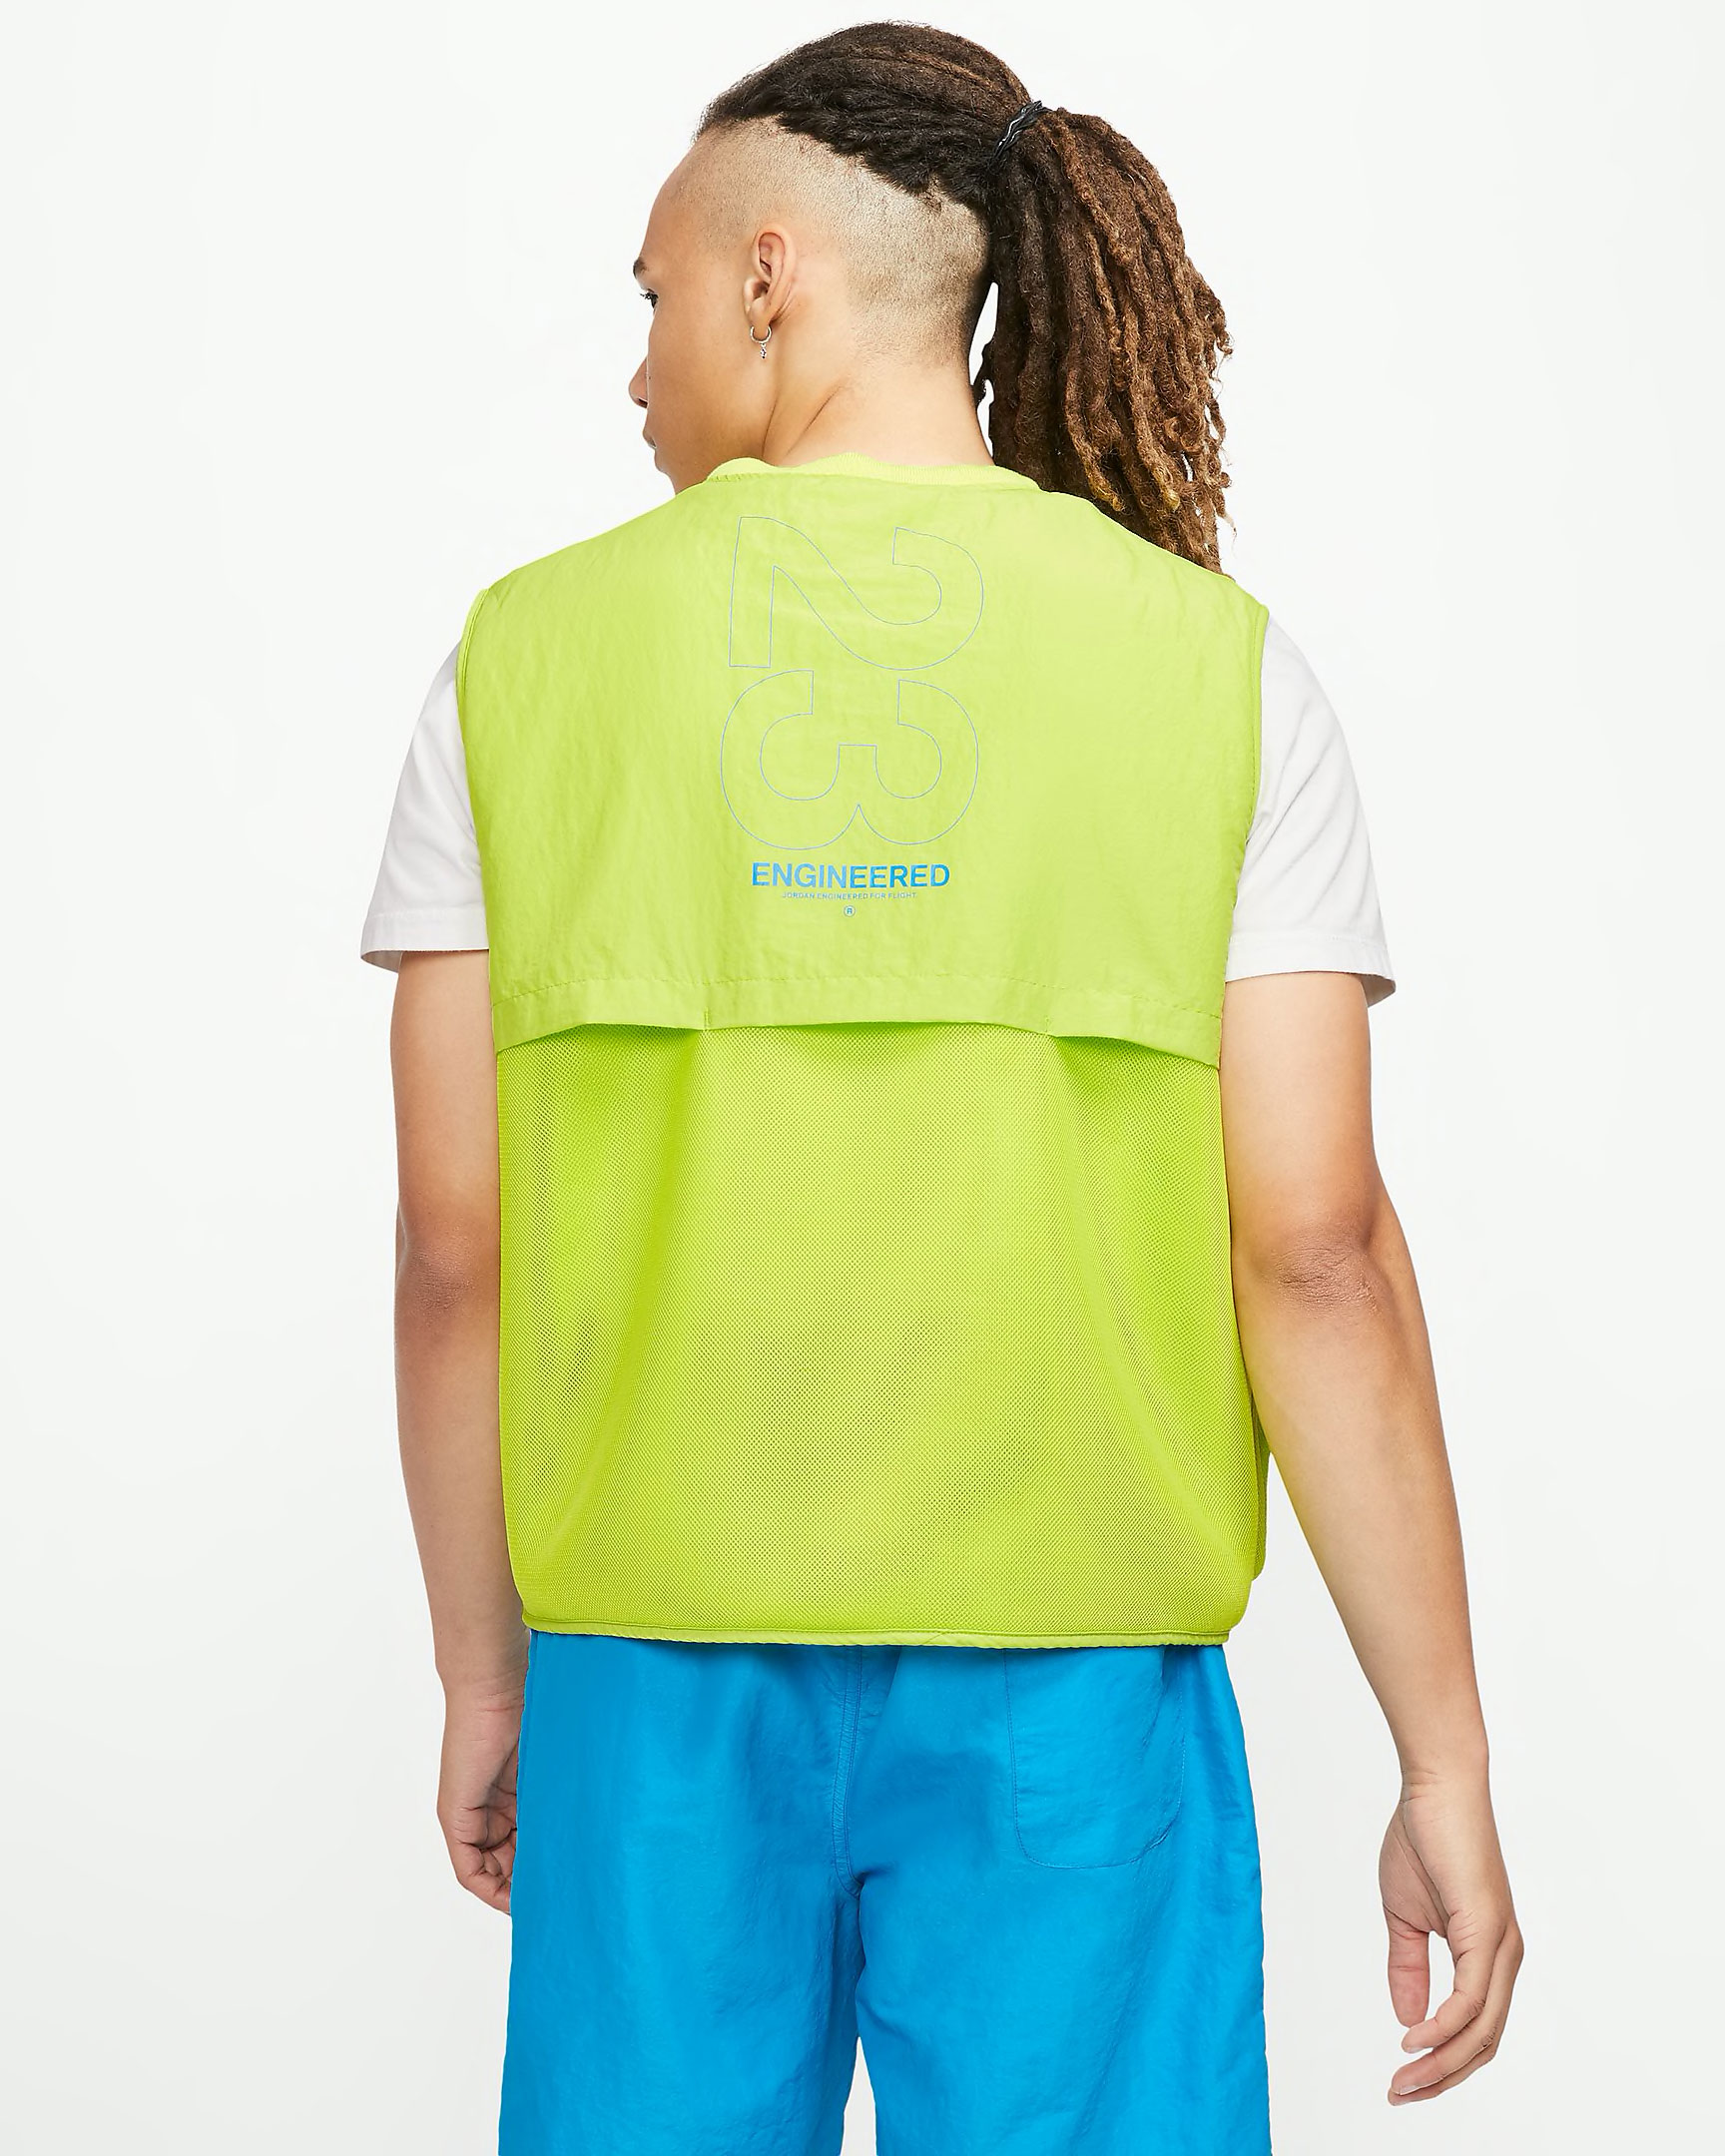 jordan-23-engineered-vest-green-blue-2